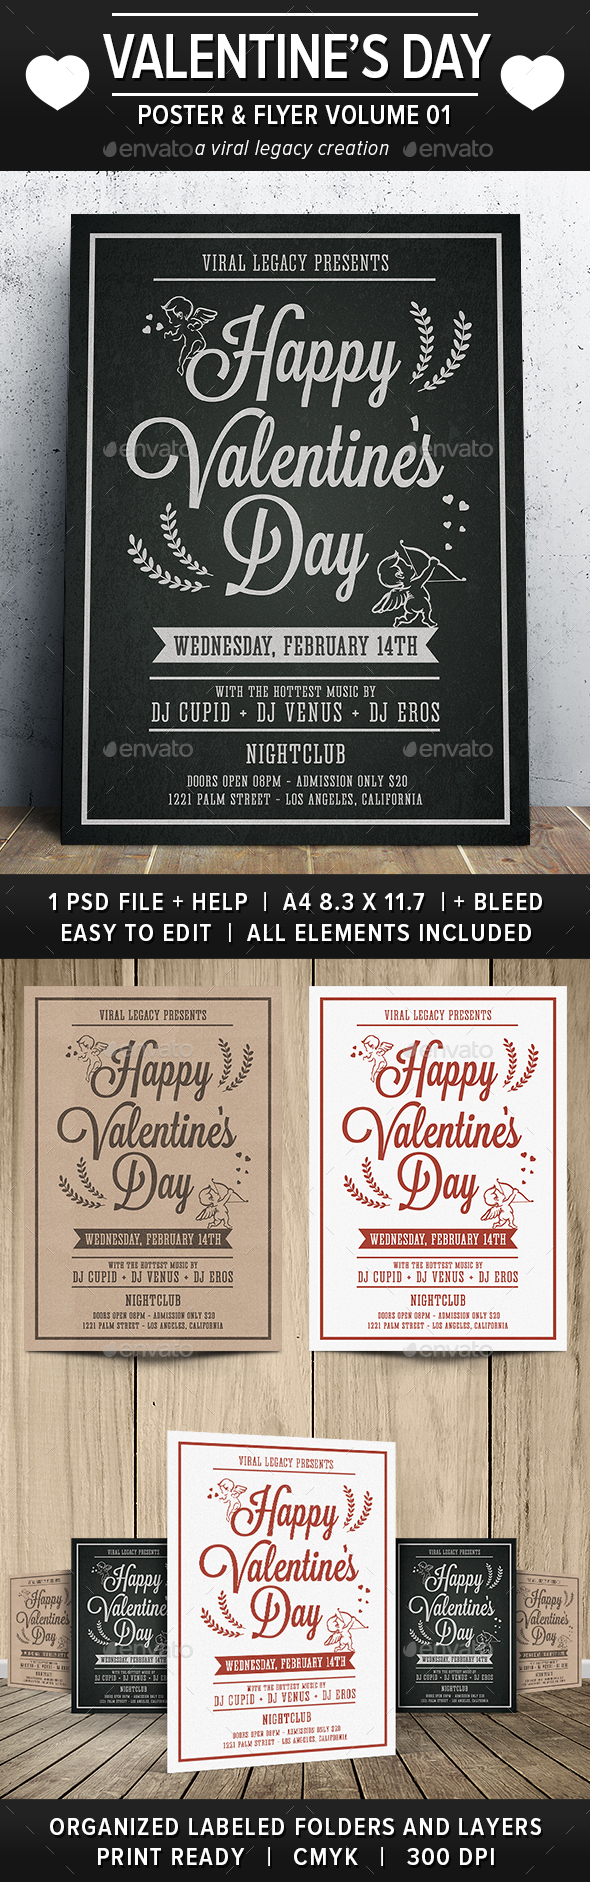 Happy Valentine's Day Poster / Flyer V01 - Flyers Print Templates